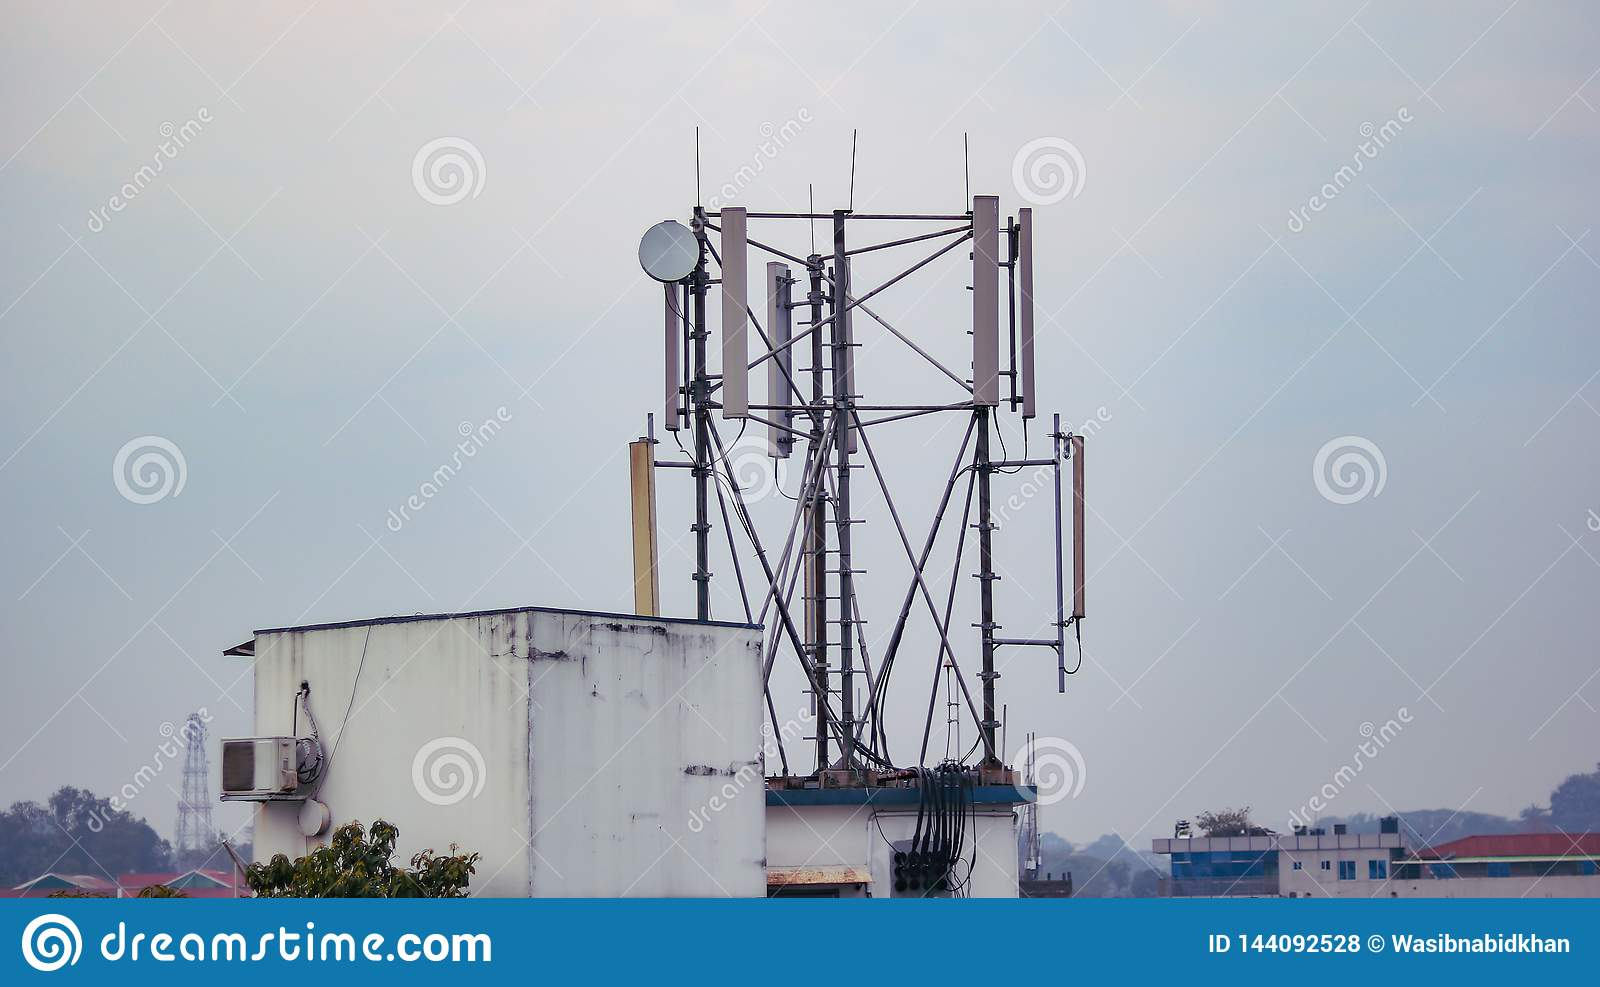 A cell phone network tower in daylight